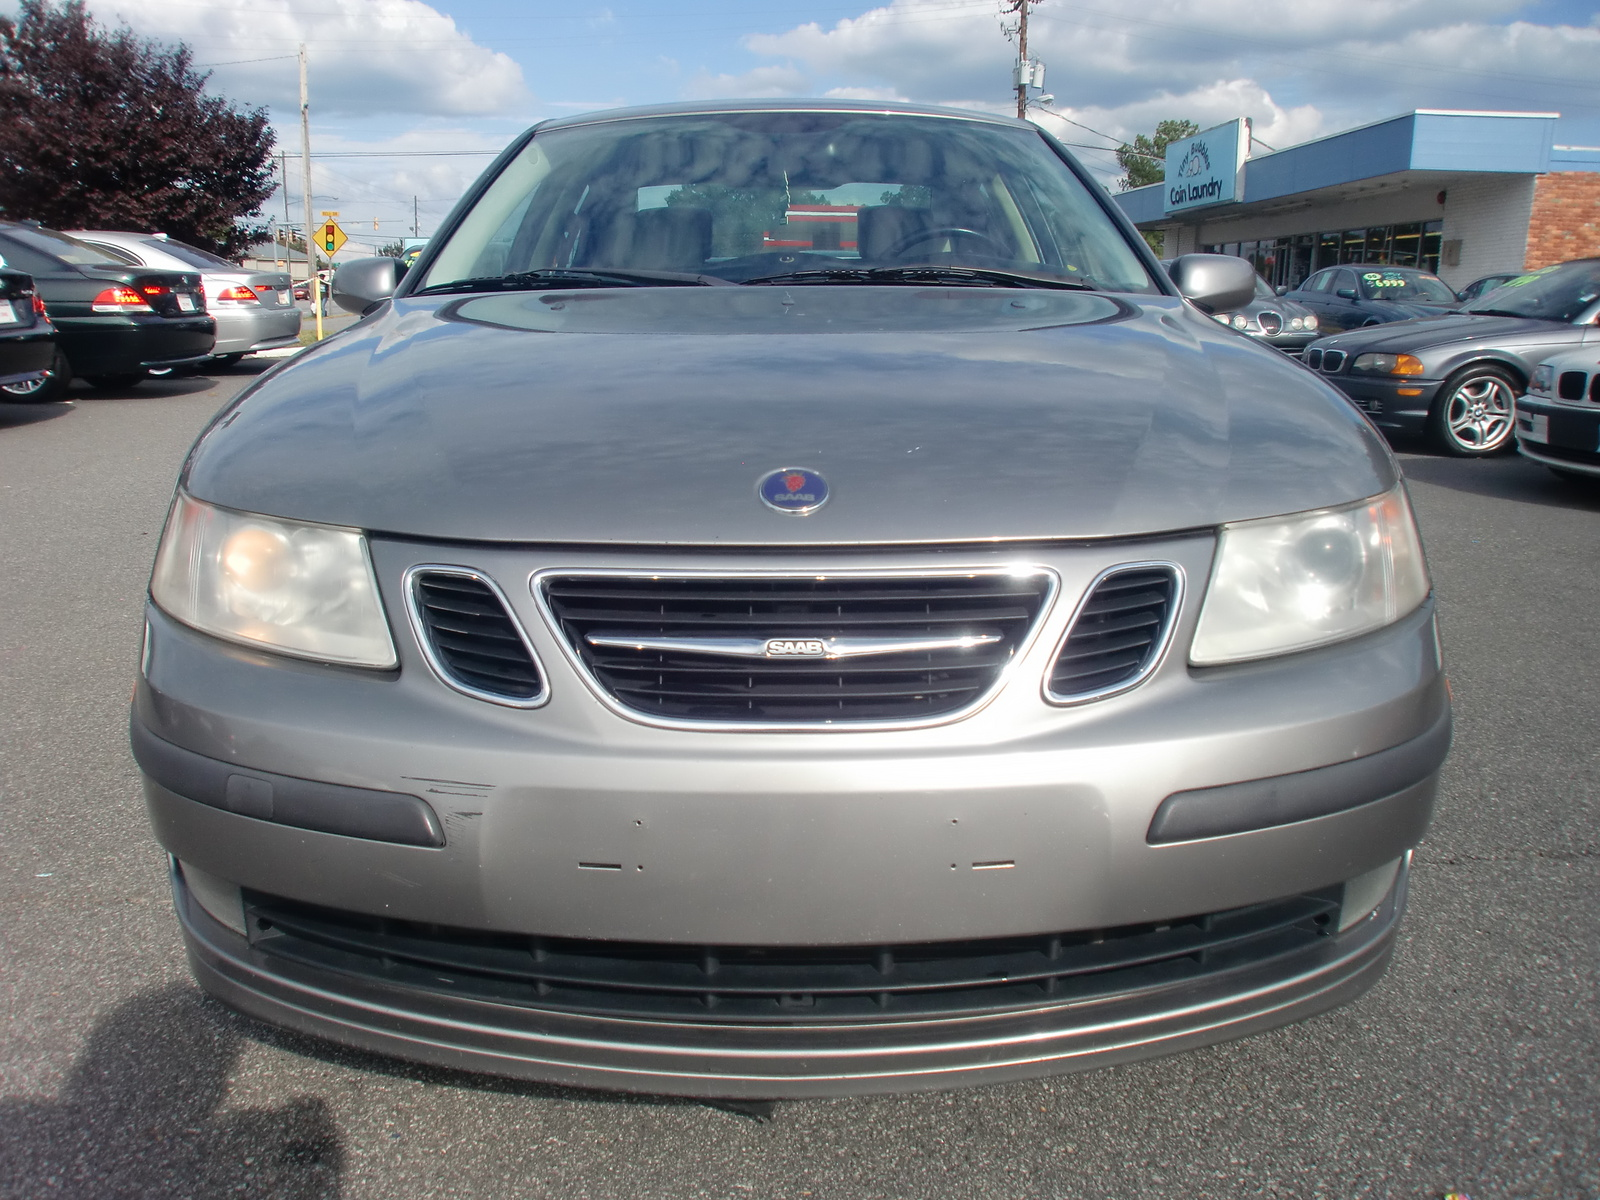 2004 Saab 9 3 Pictures C5789 pi36574383 furthermore Saab index furthermore Hvac Problems Staying  fortable Aging Cars likewise 11397 Nice Oem Charcoal Greys Or Even Platinummy Silvers as well Interior 42774325. on 2004 saab 9 5 aero